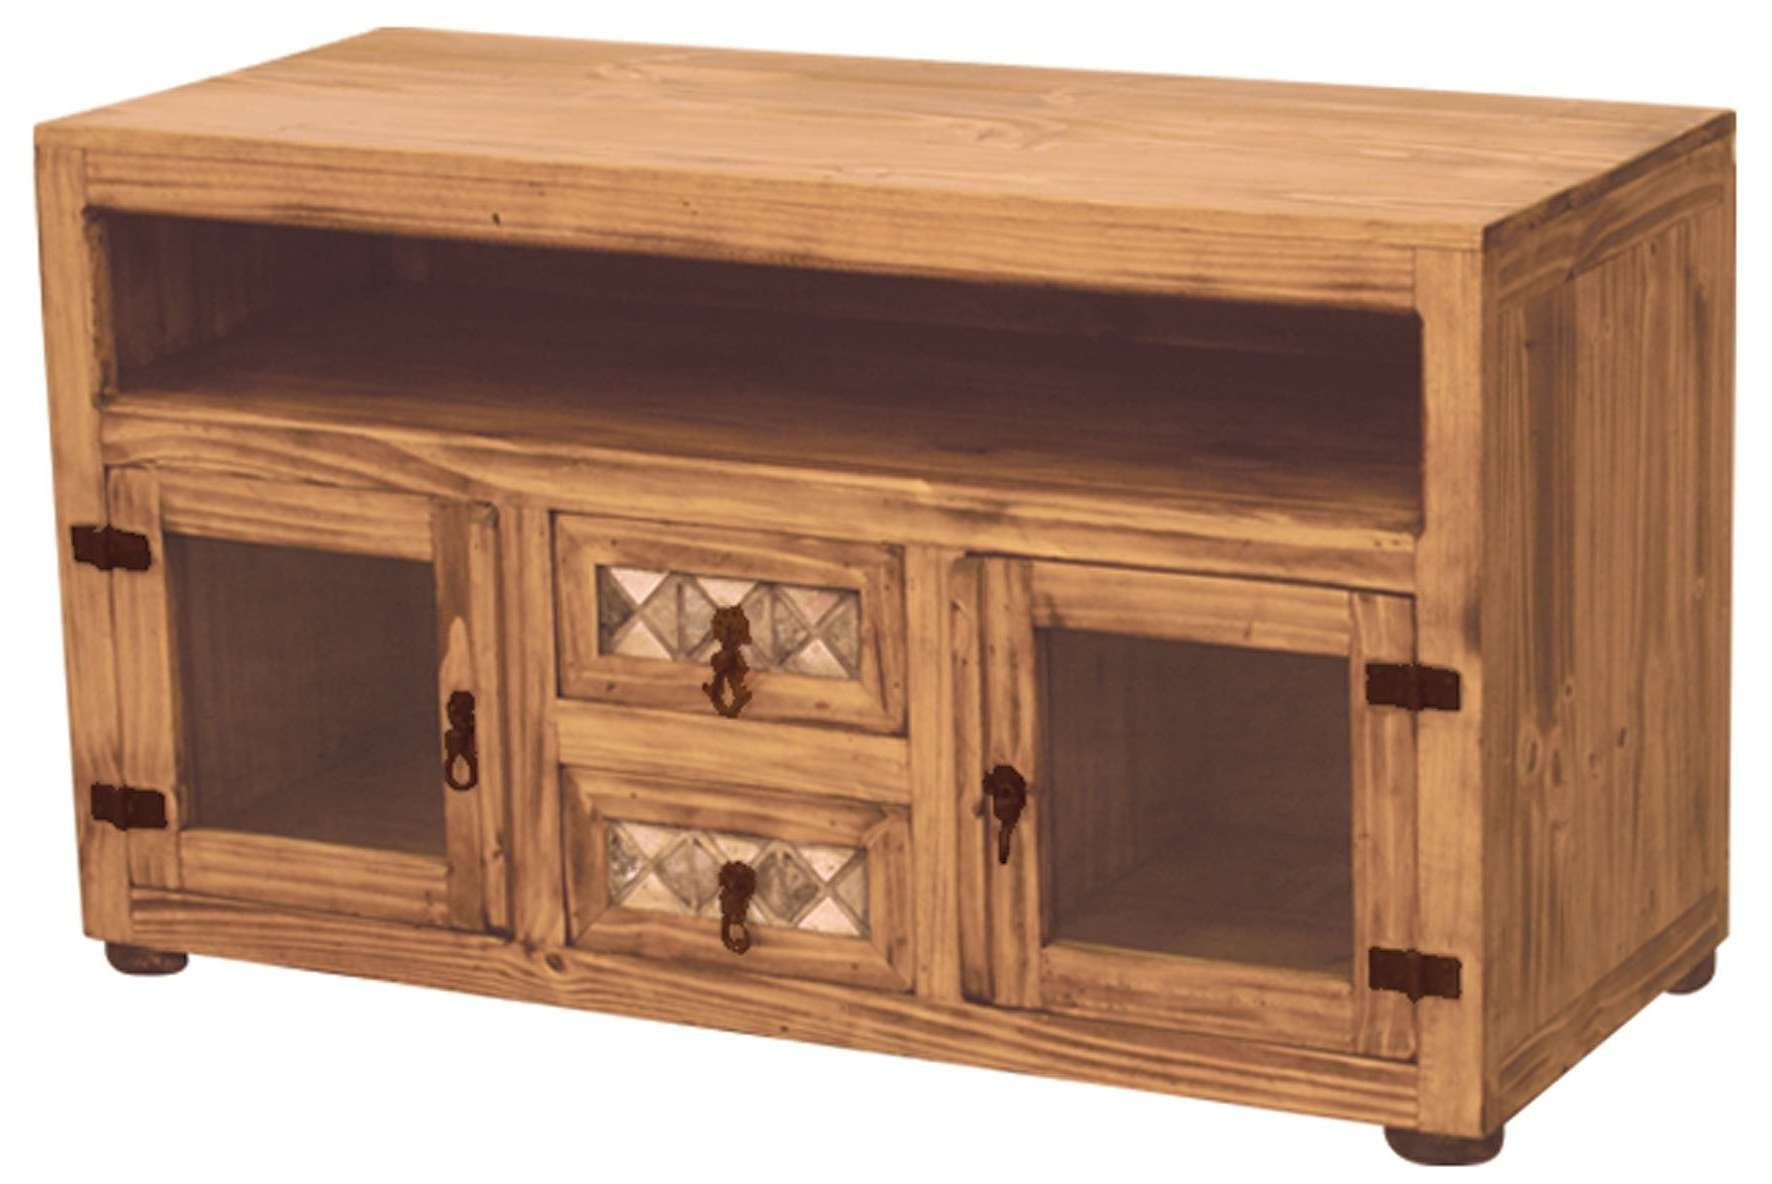 Cabinet Rustic Throughout Rustic Pine Tv Cabinets (View 4 of 20)